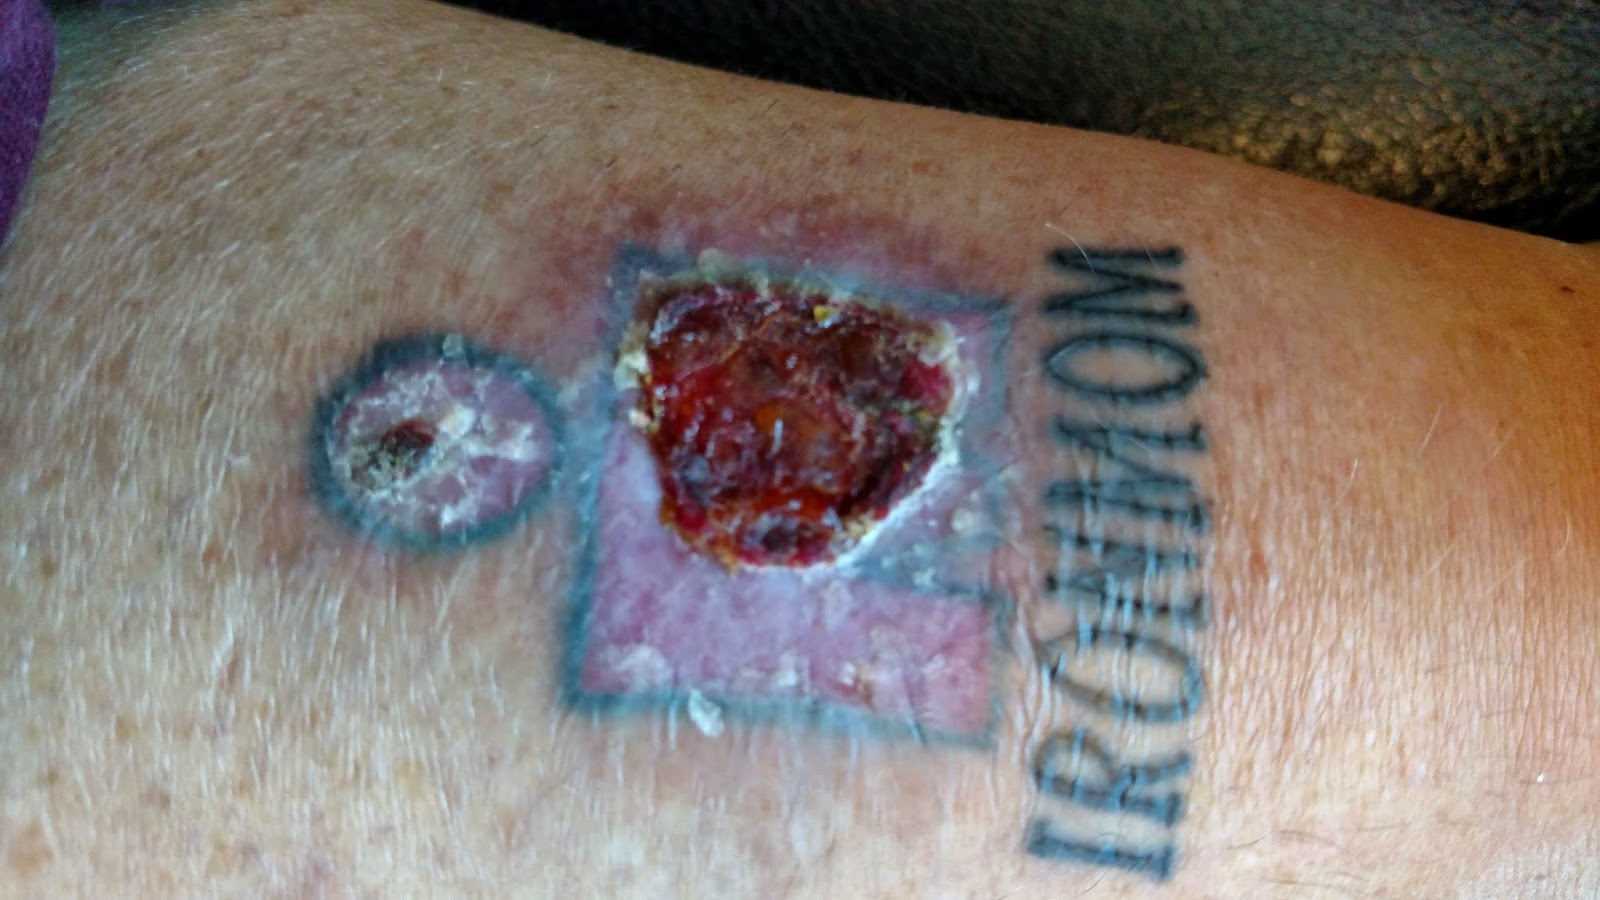 Strongerbetterfastermore january 2015 for Antibiotics for infected tattoo